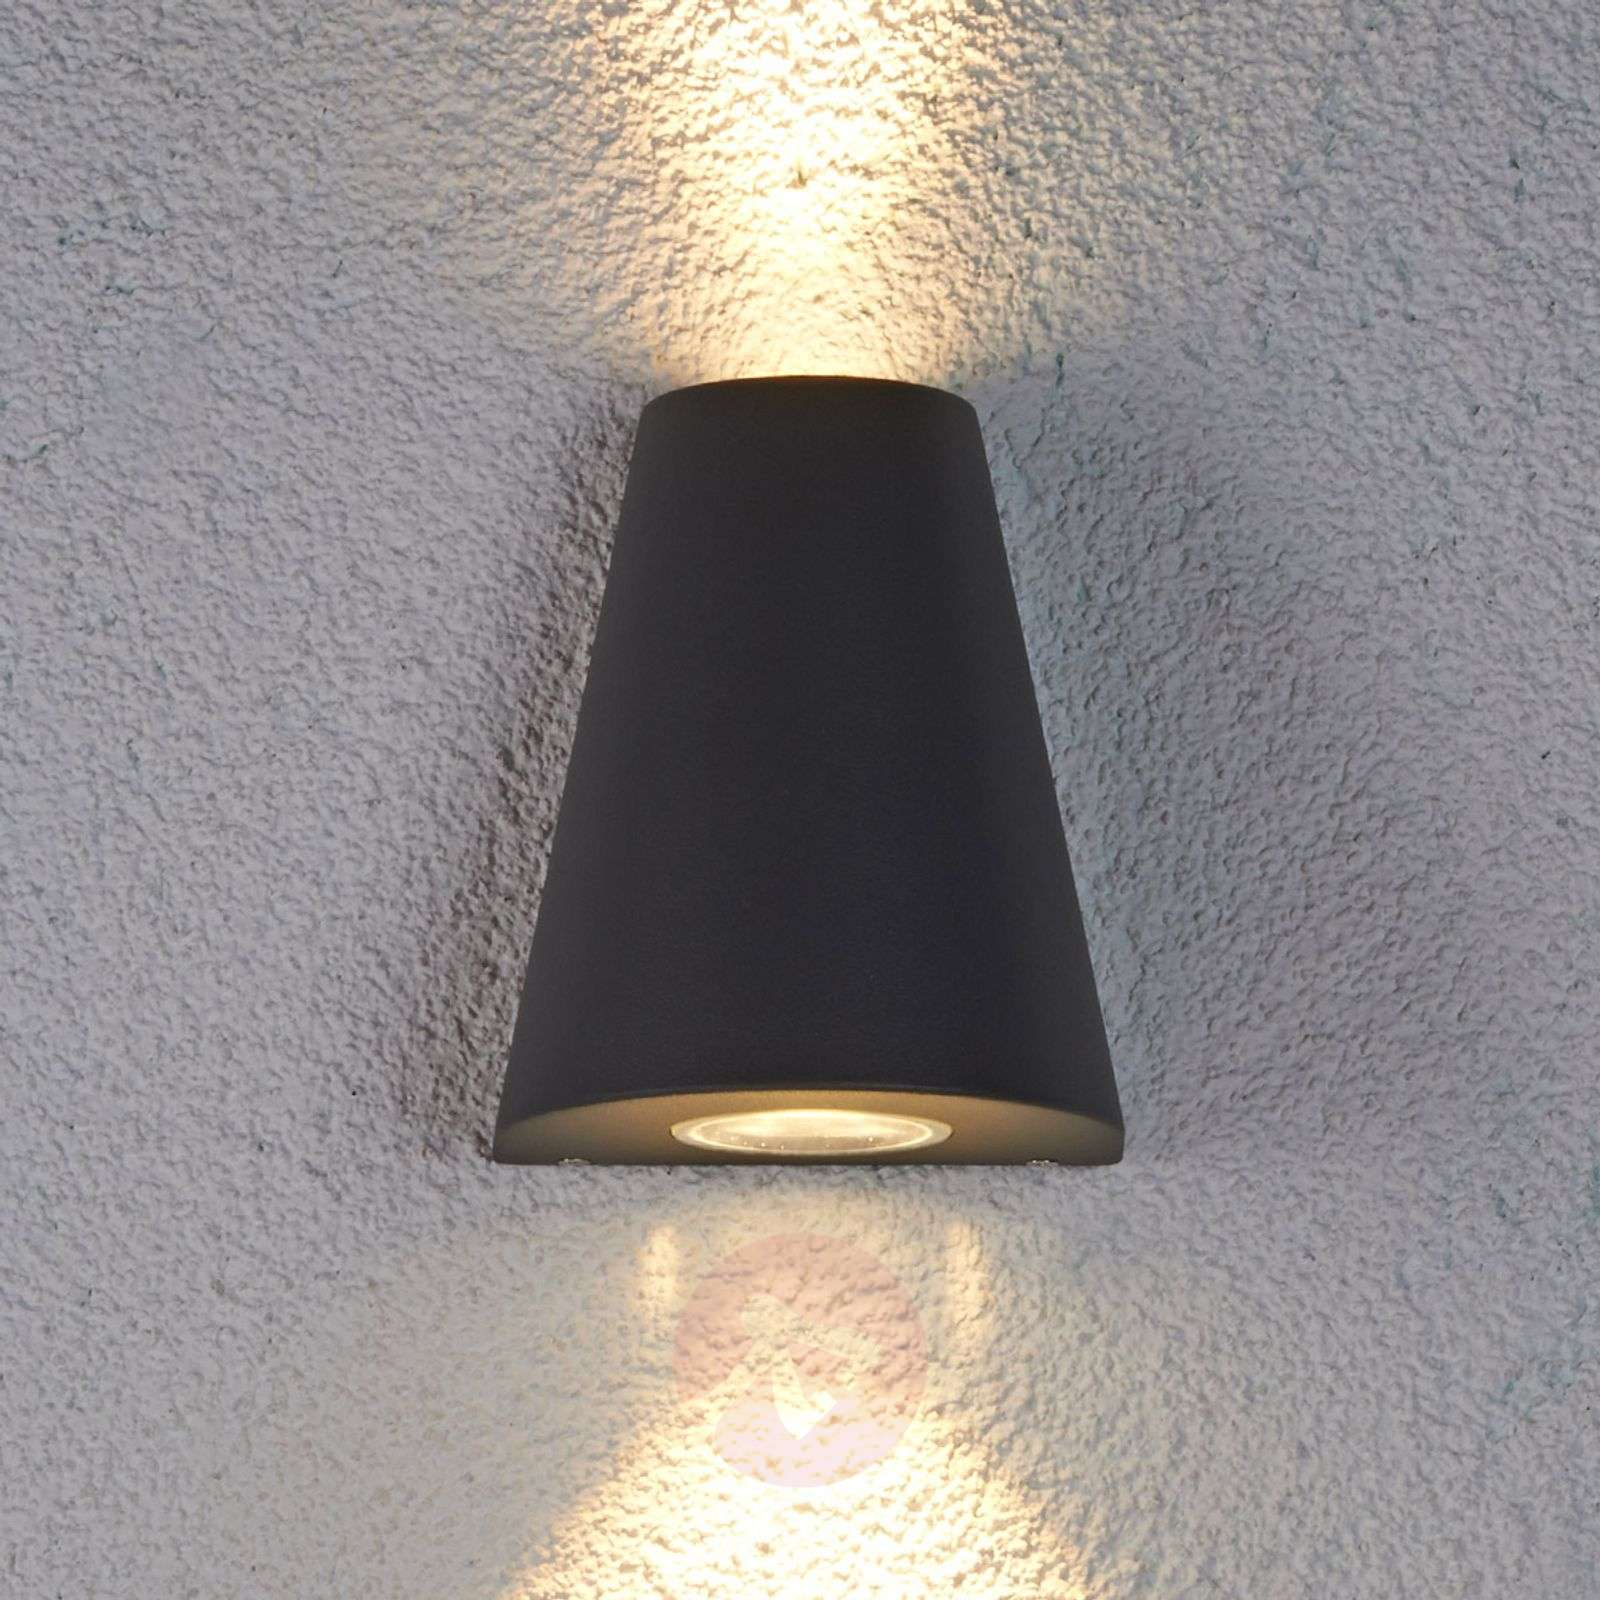 bronze contemporary lighting architectural civic wall loading light zoom lights led max sconce outdoor maxim